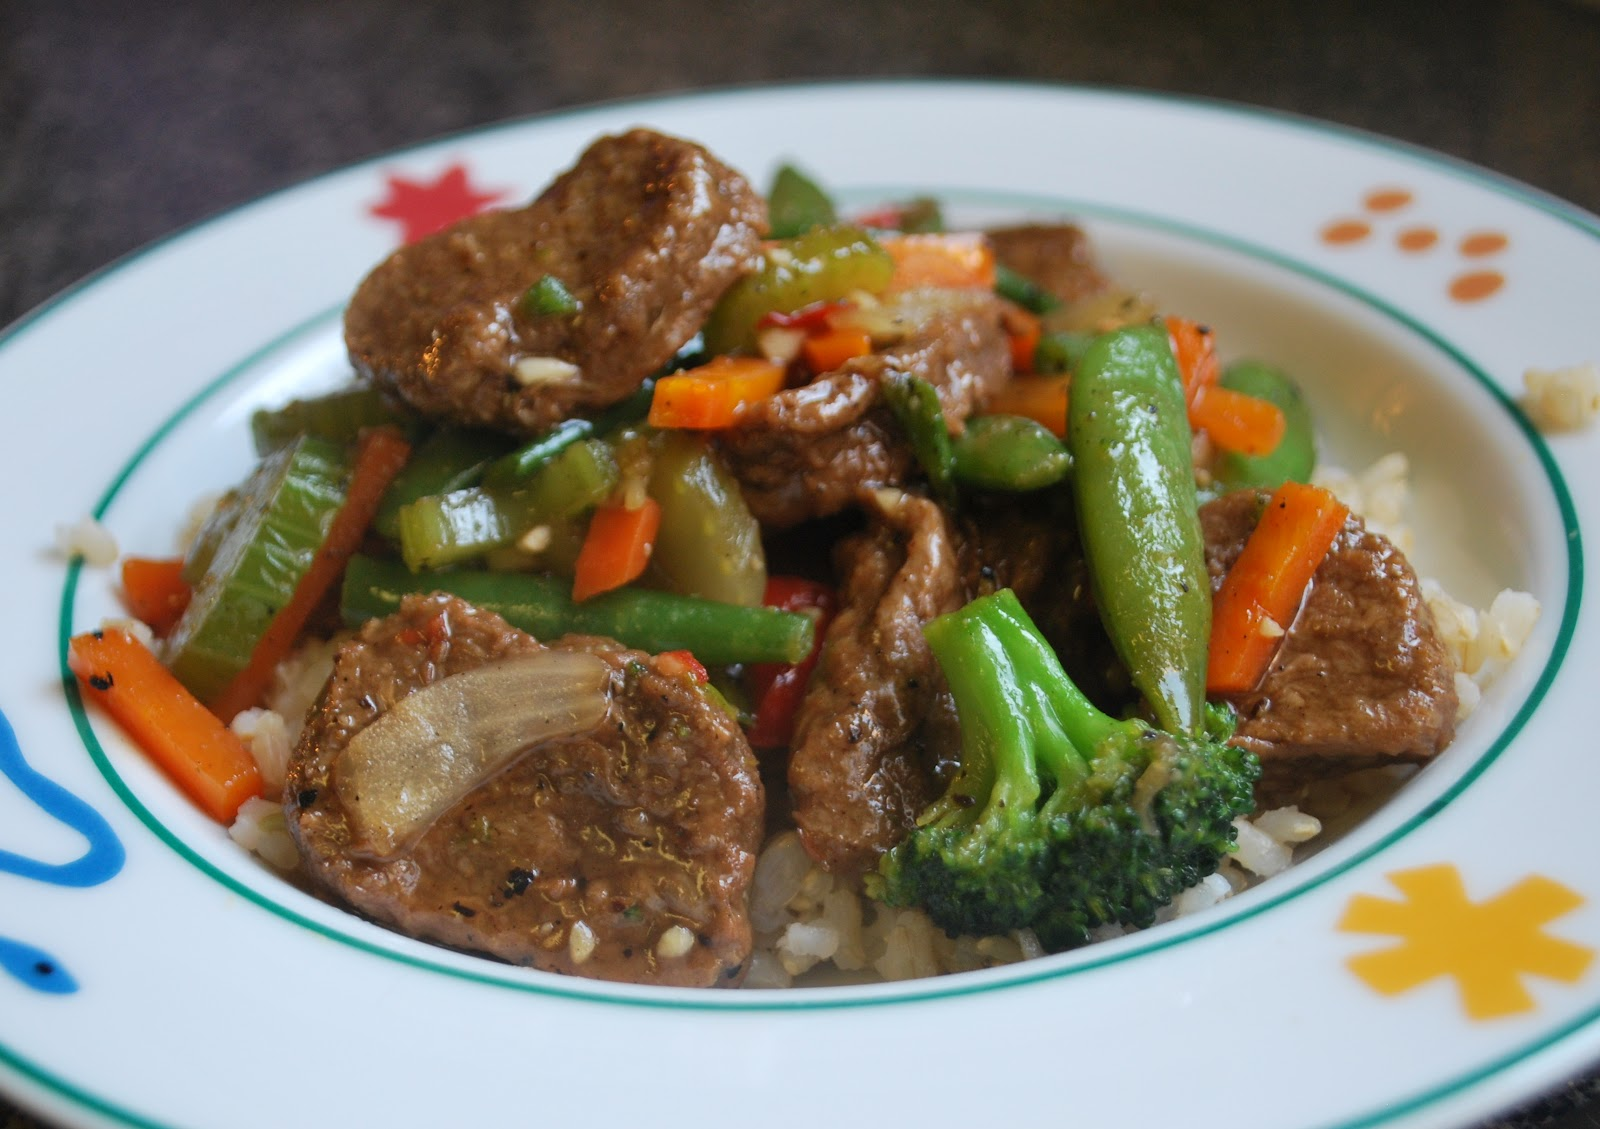 Pepper Steak Stir Fry Black Pepper Steak Stir Fry Was